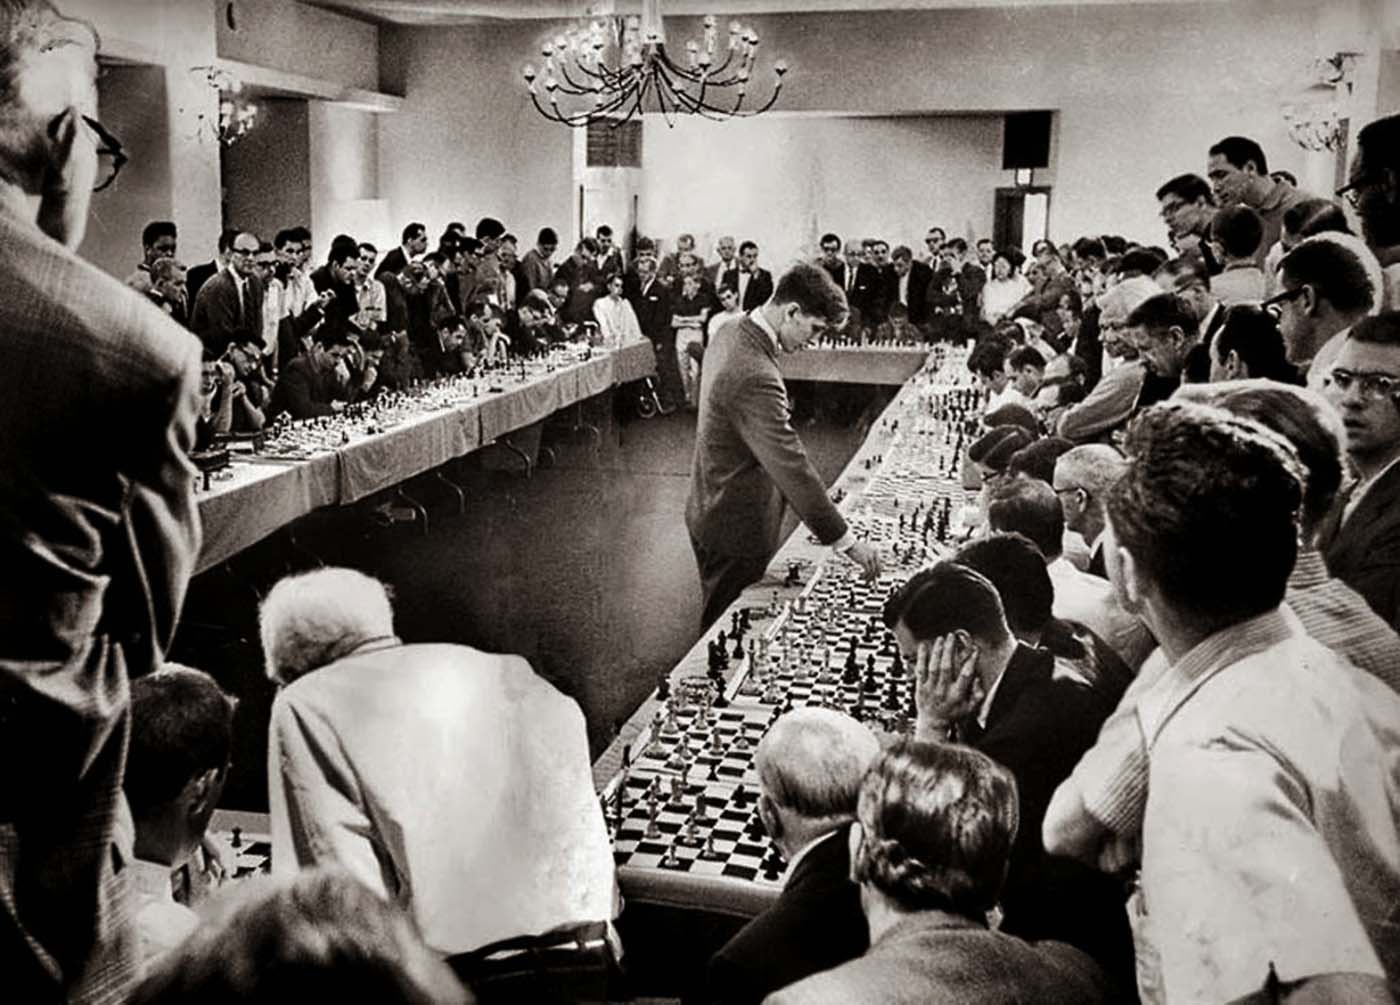 Bobby Fischer playing 50 opponents simultaneously, 1964.